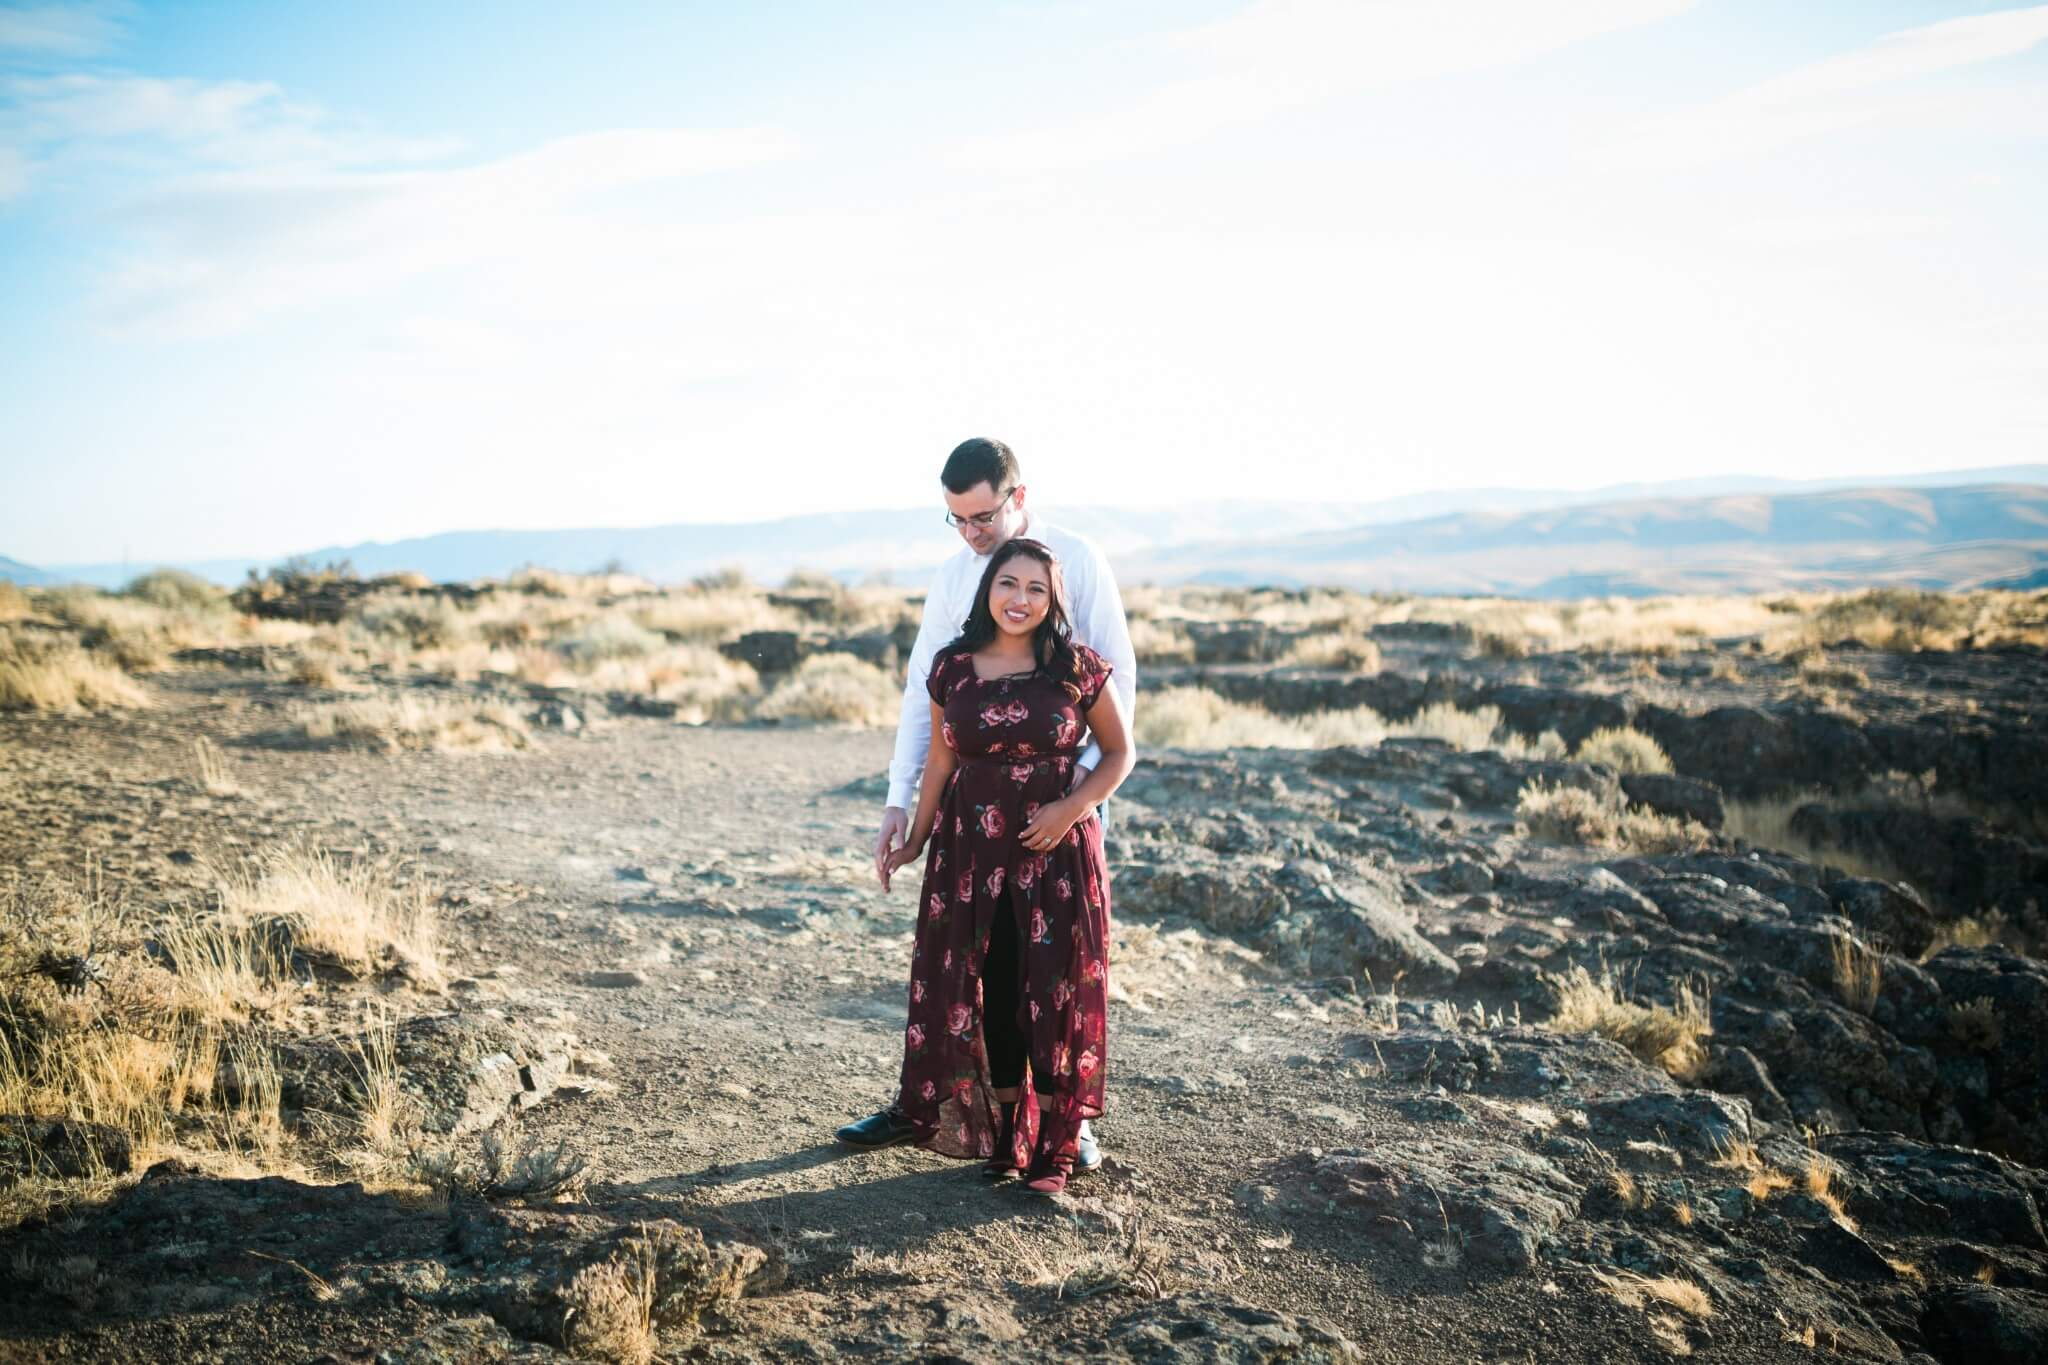 Lesly & Michael Vantage Engagement by Bill Weisgerber Spokane Photographer (4 of 71).jpg